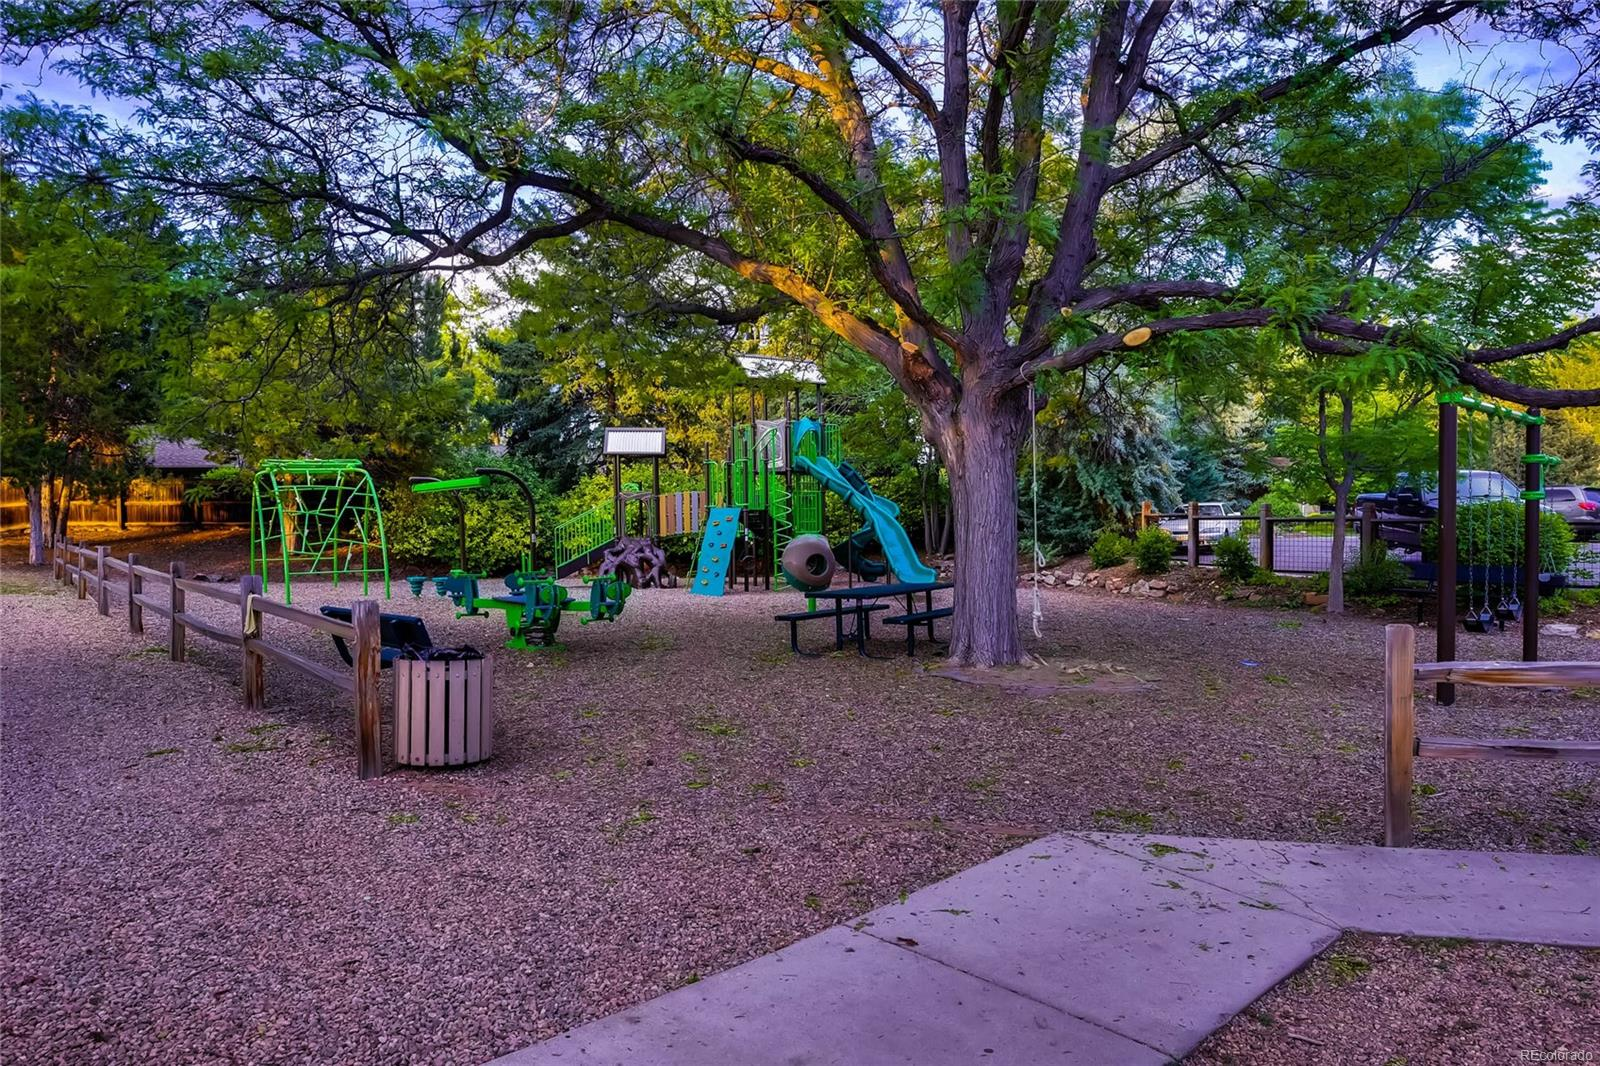 Bow Mar South Playground is usually full of children, parents and babysitters.